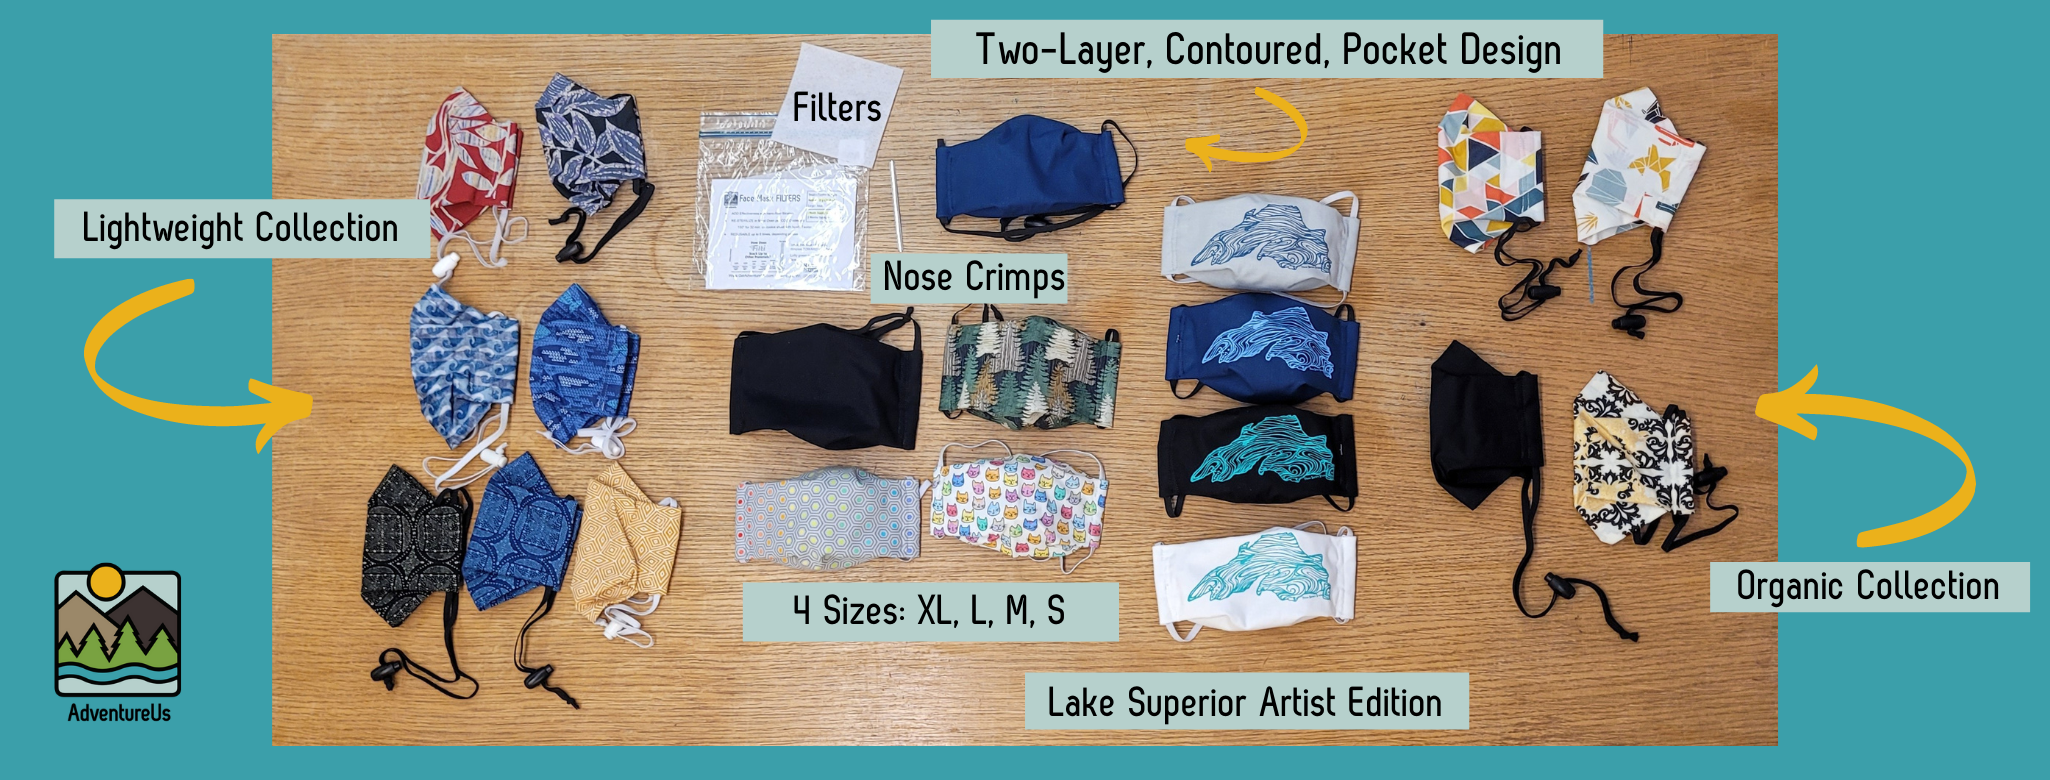 AdventureUs' comfort designed face masks are made right in Northern Wisconsin with our community in mind.  With over 8,000 made, AdventureUs has you covered.